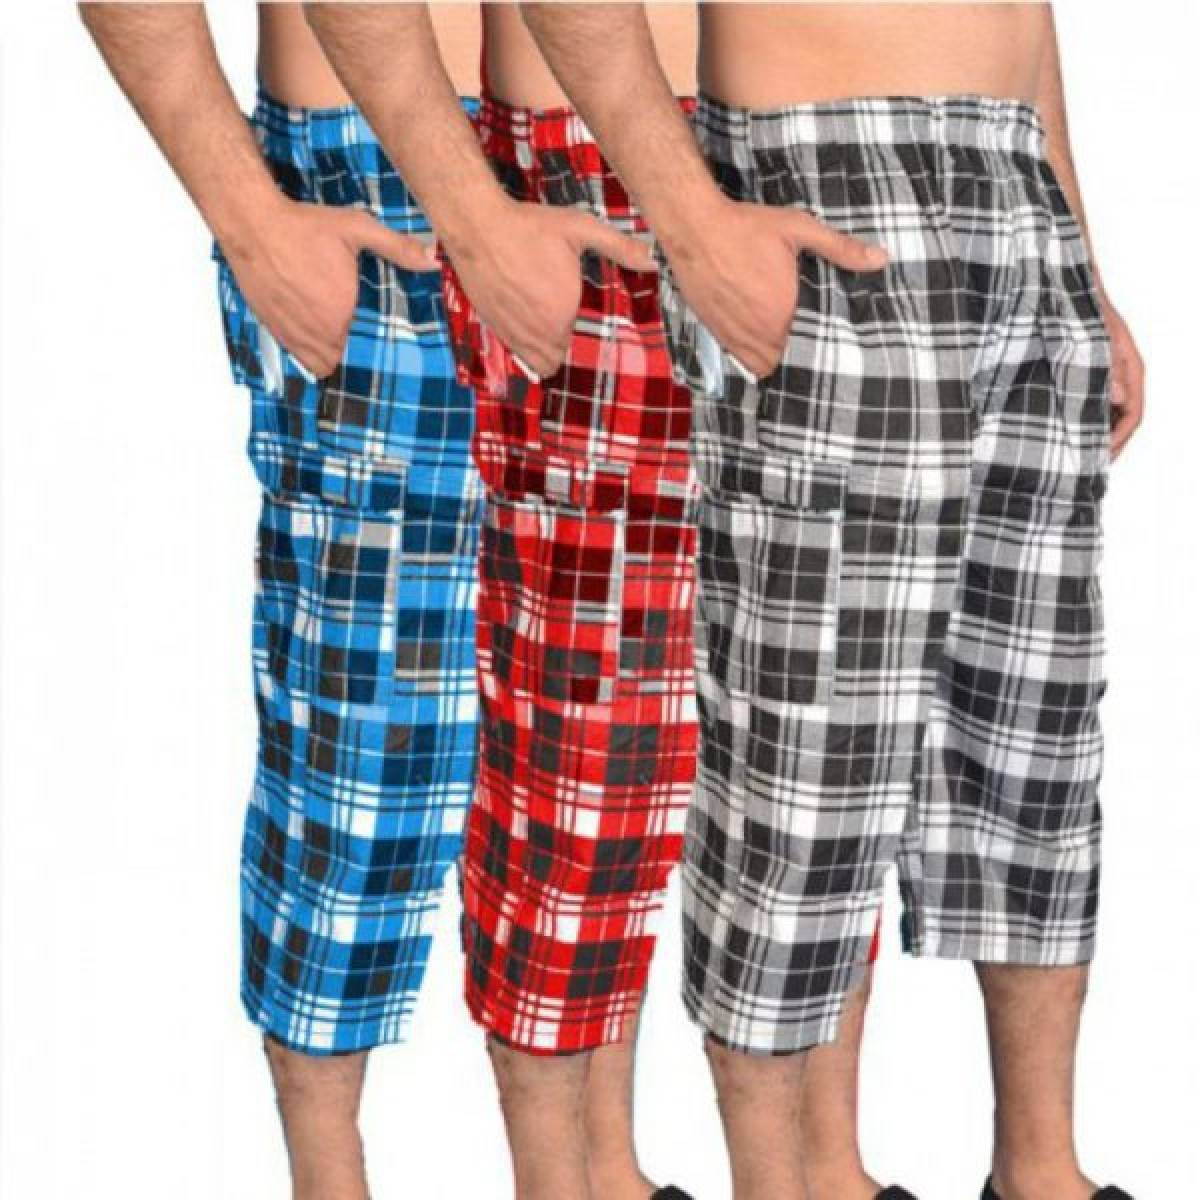 Pack of 3 Casual Summer Imported Long Shorts / Sports Shorts for Men